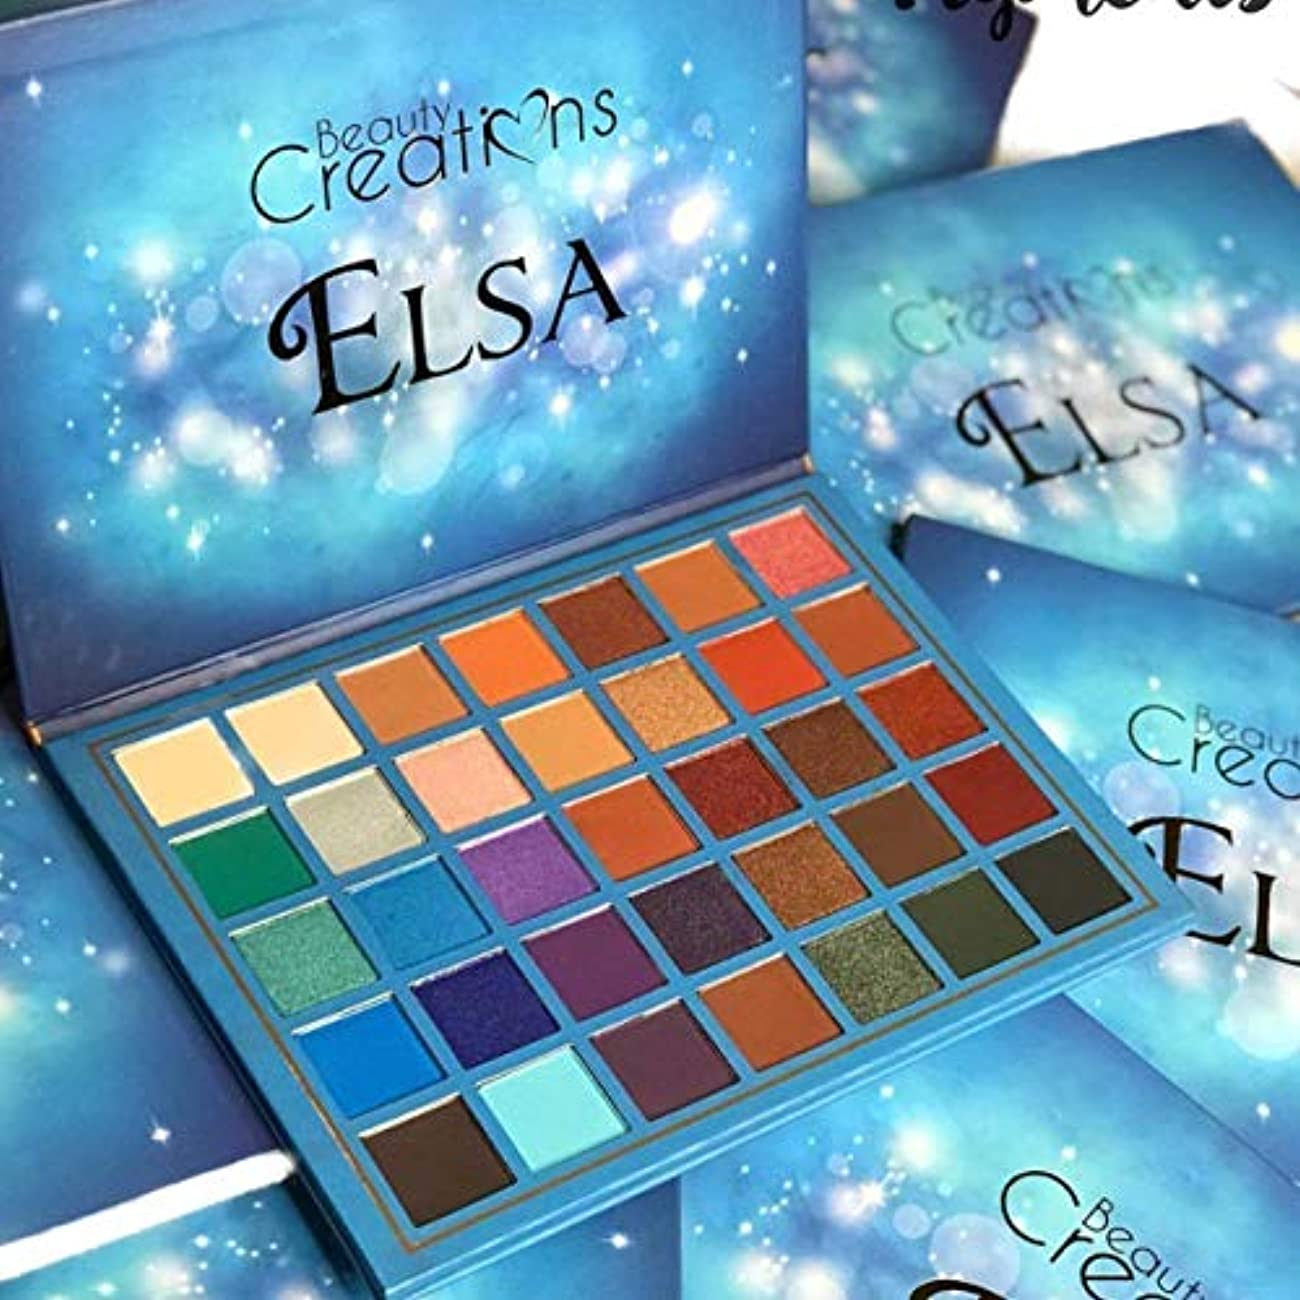 騒々しい誇り心臓Elsa 35 Color Elsa Eyeshadow Palette By Beauty Creation